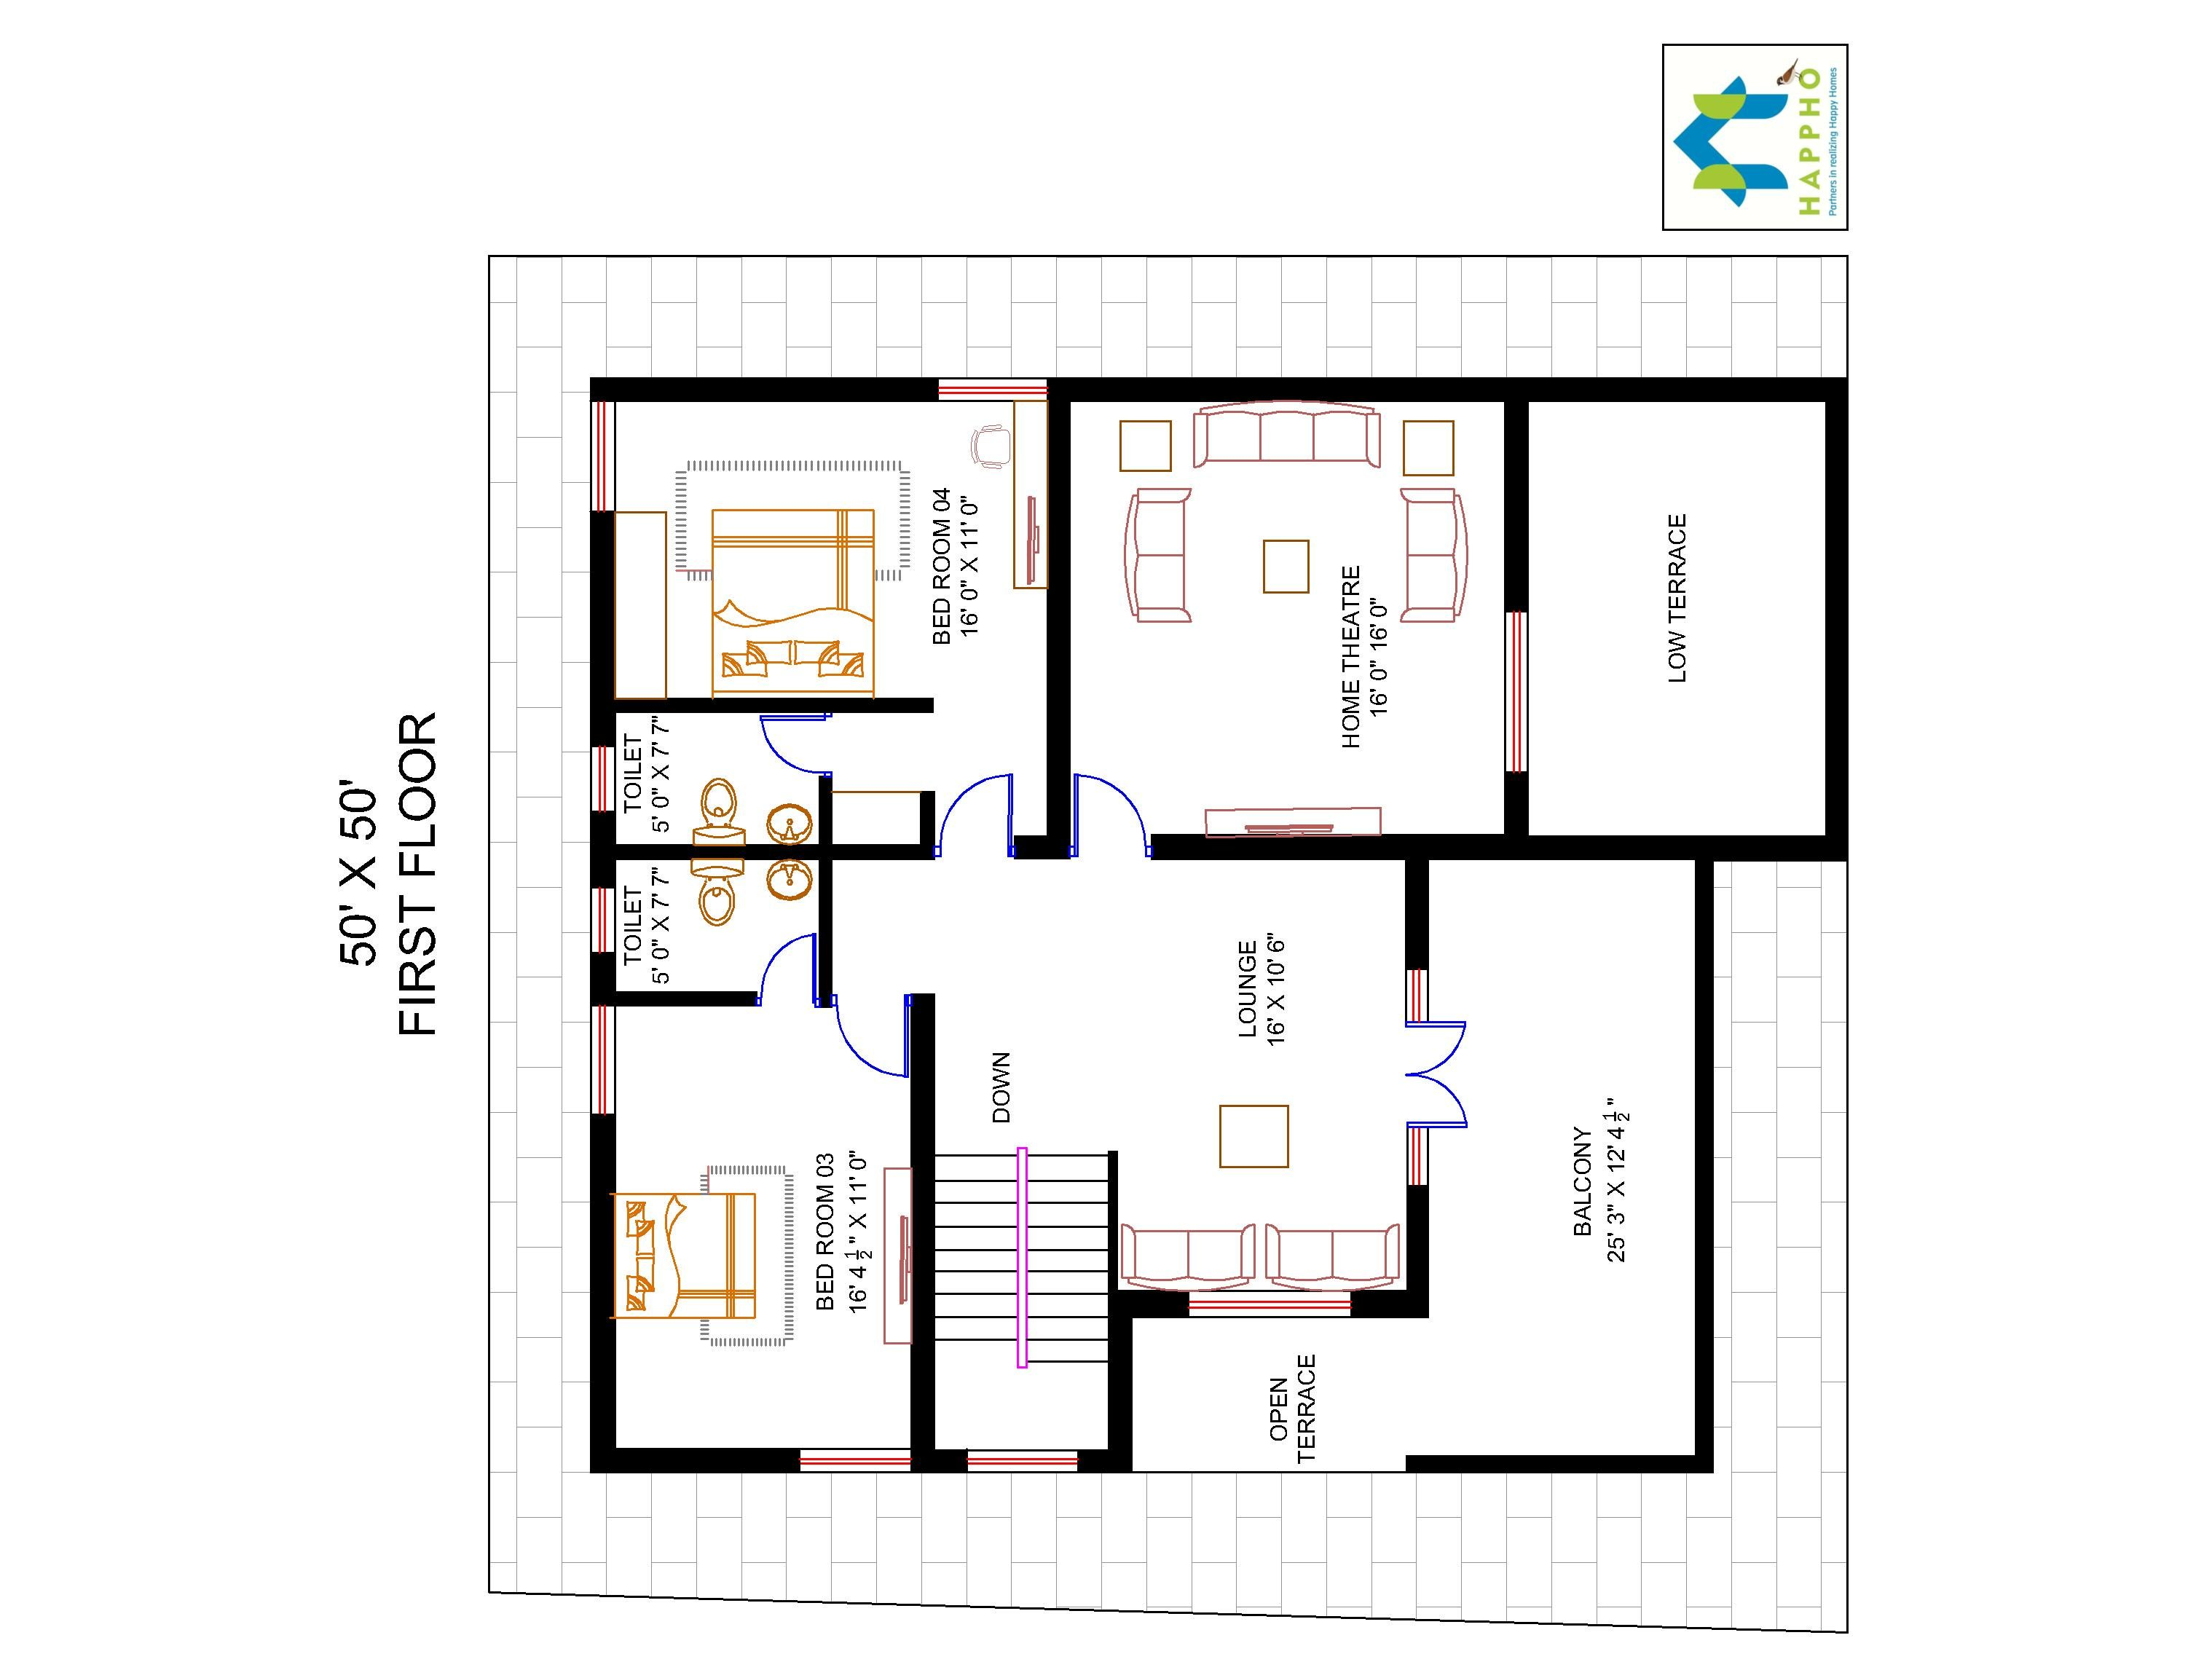 2500 sq ft bungalow floor plans for 2500 square ft house plans